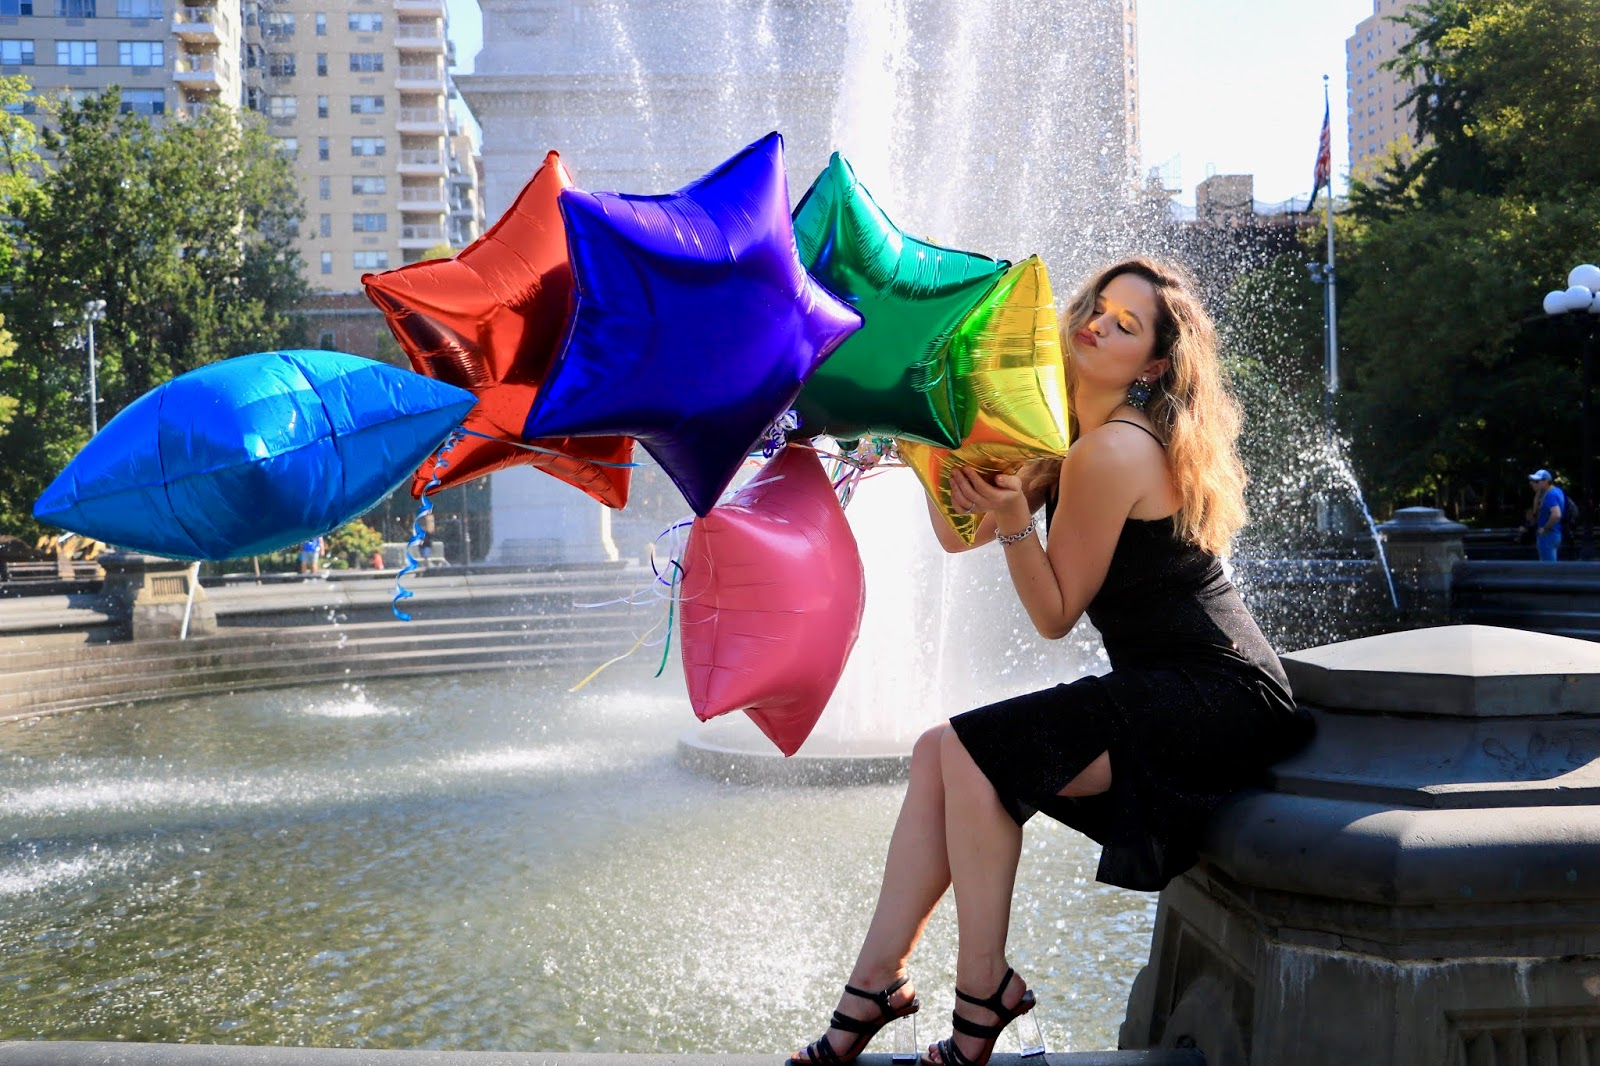 Nyc fashion blogger Kathleen Harper's Washington Square Park photo shoot with balloons.